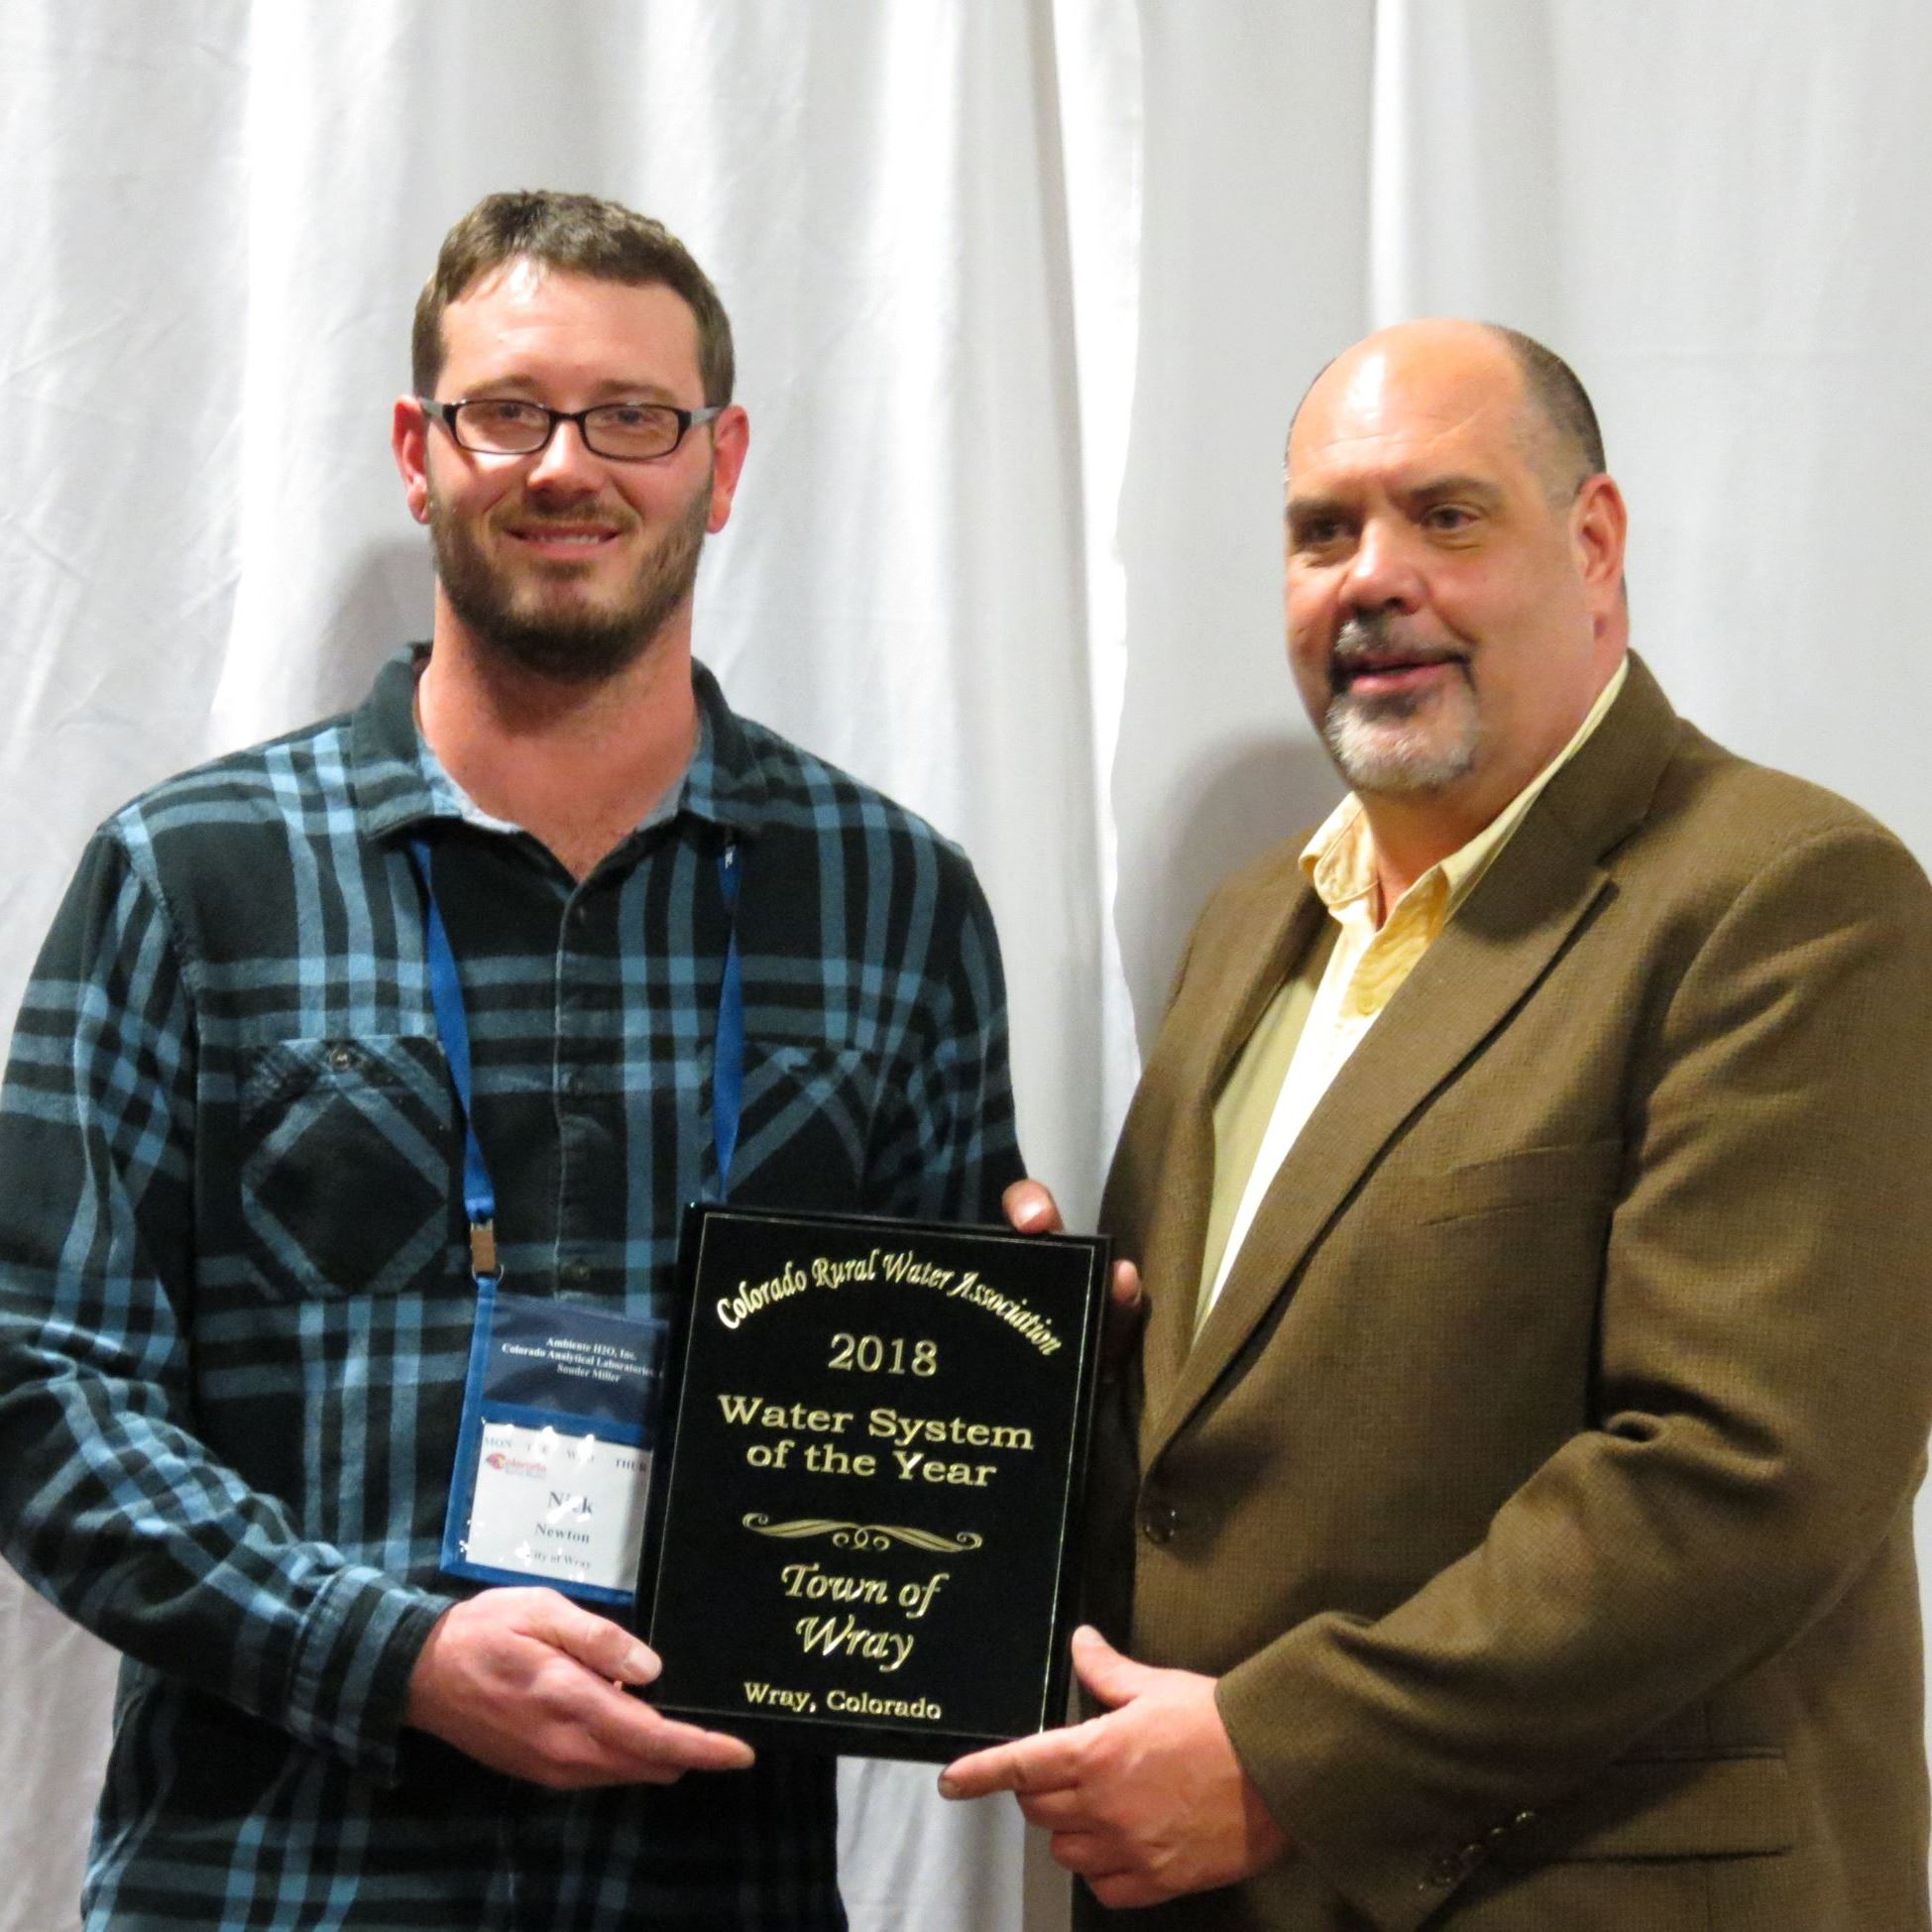 Nick Newton Receives Water System of the Year Award